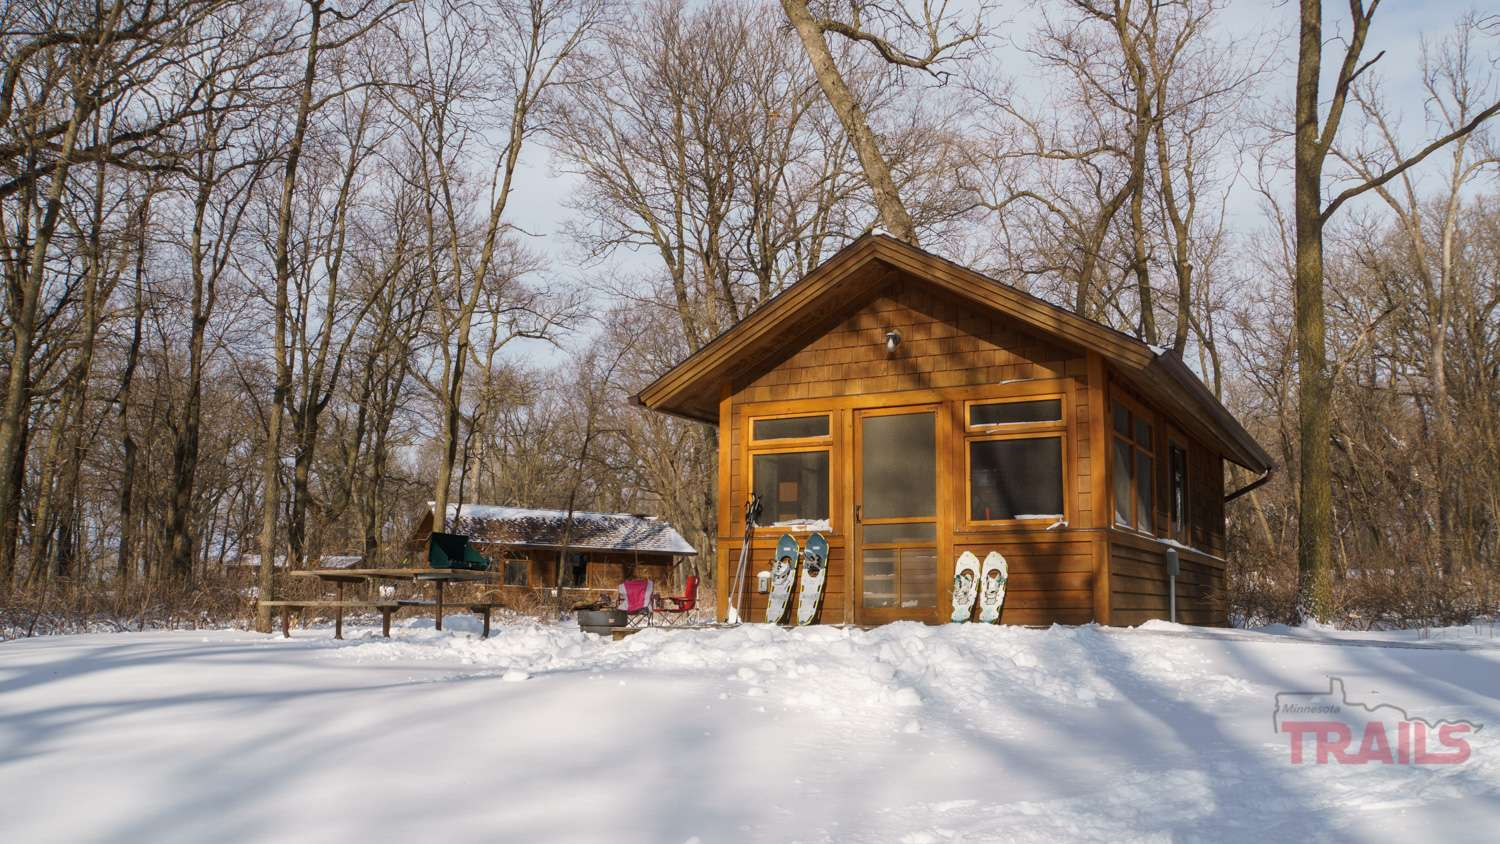 A small cabin in the snow